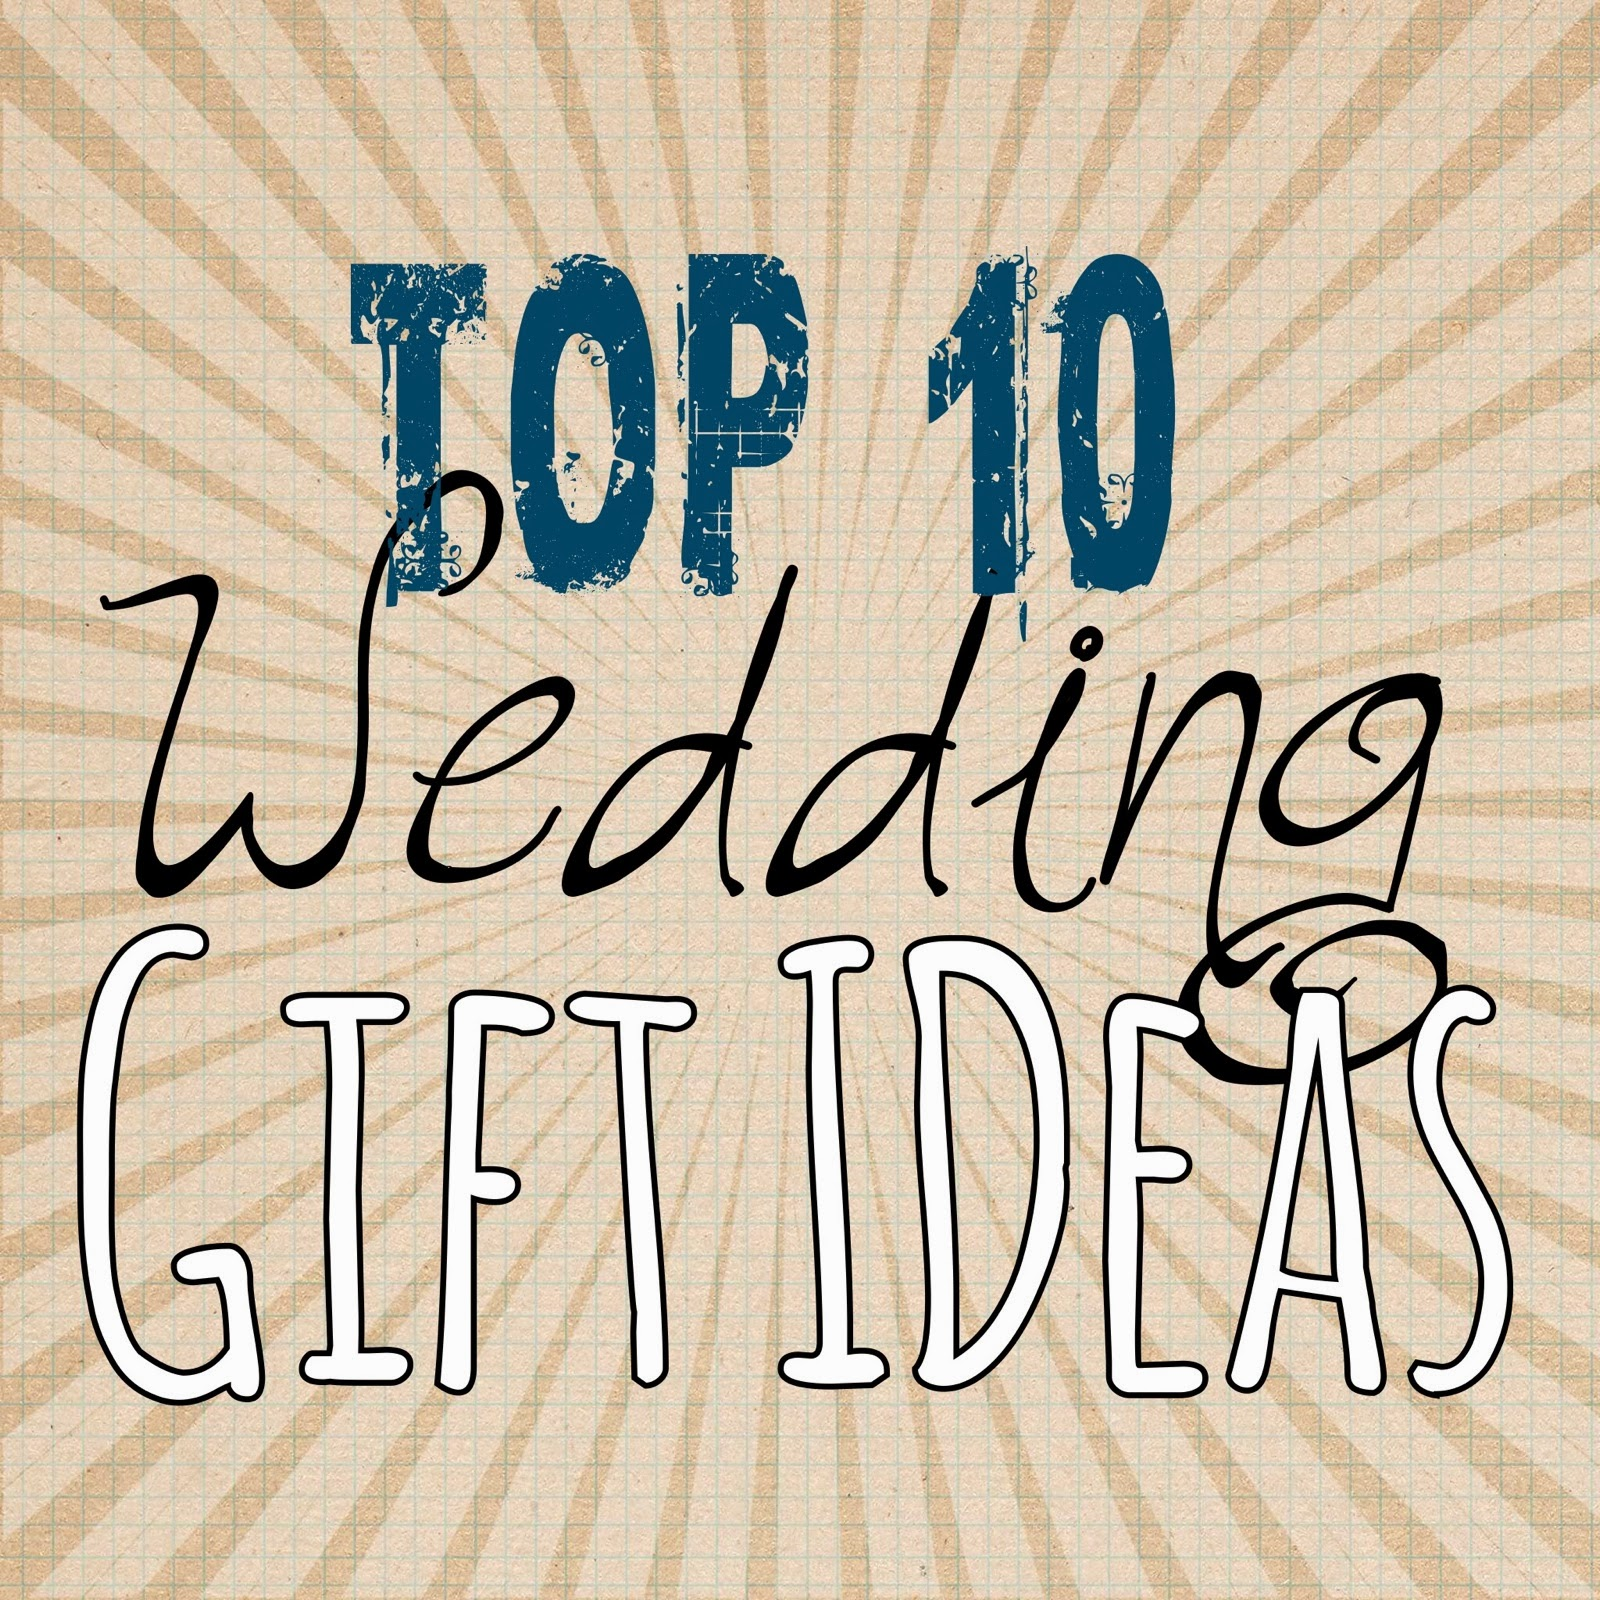 Wedding Gifts For Good Friends: Top 10 Wedding Gift Ideas